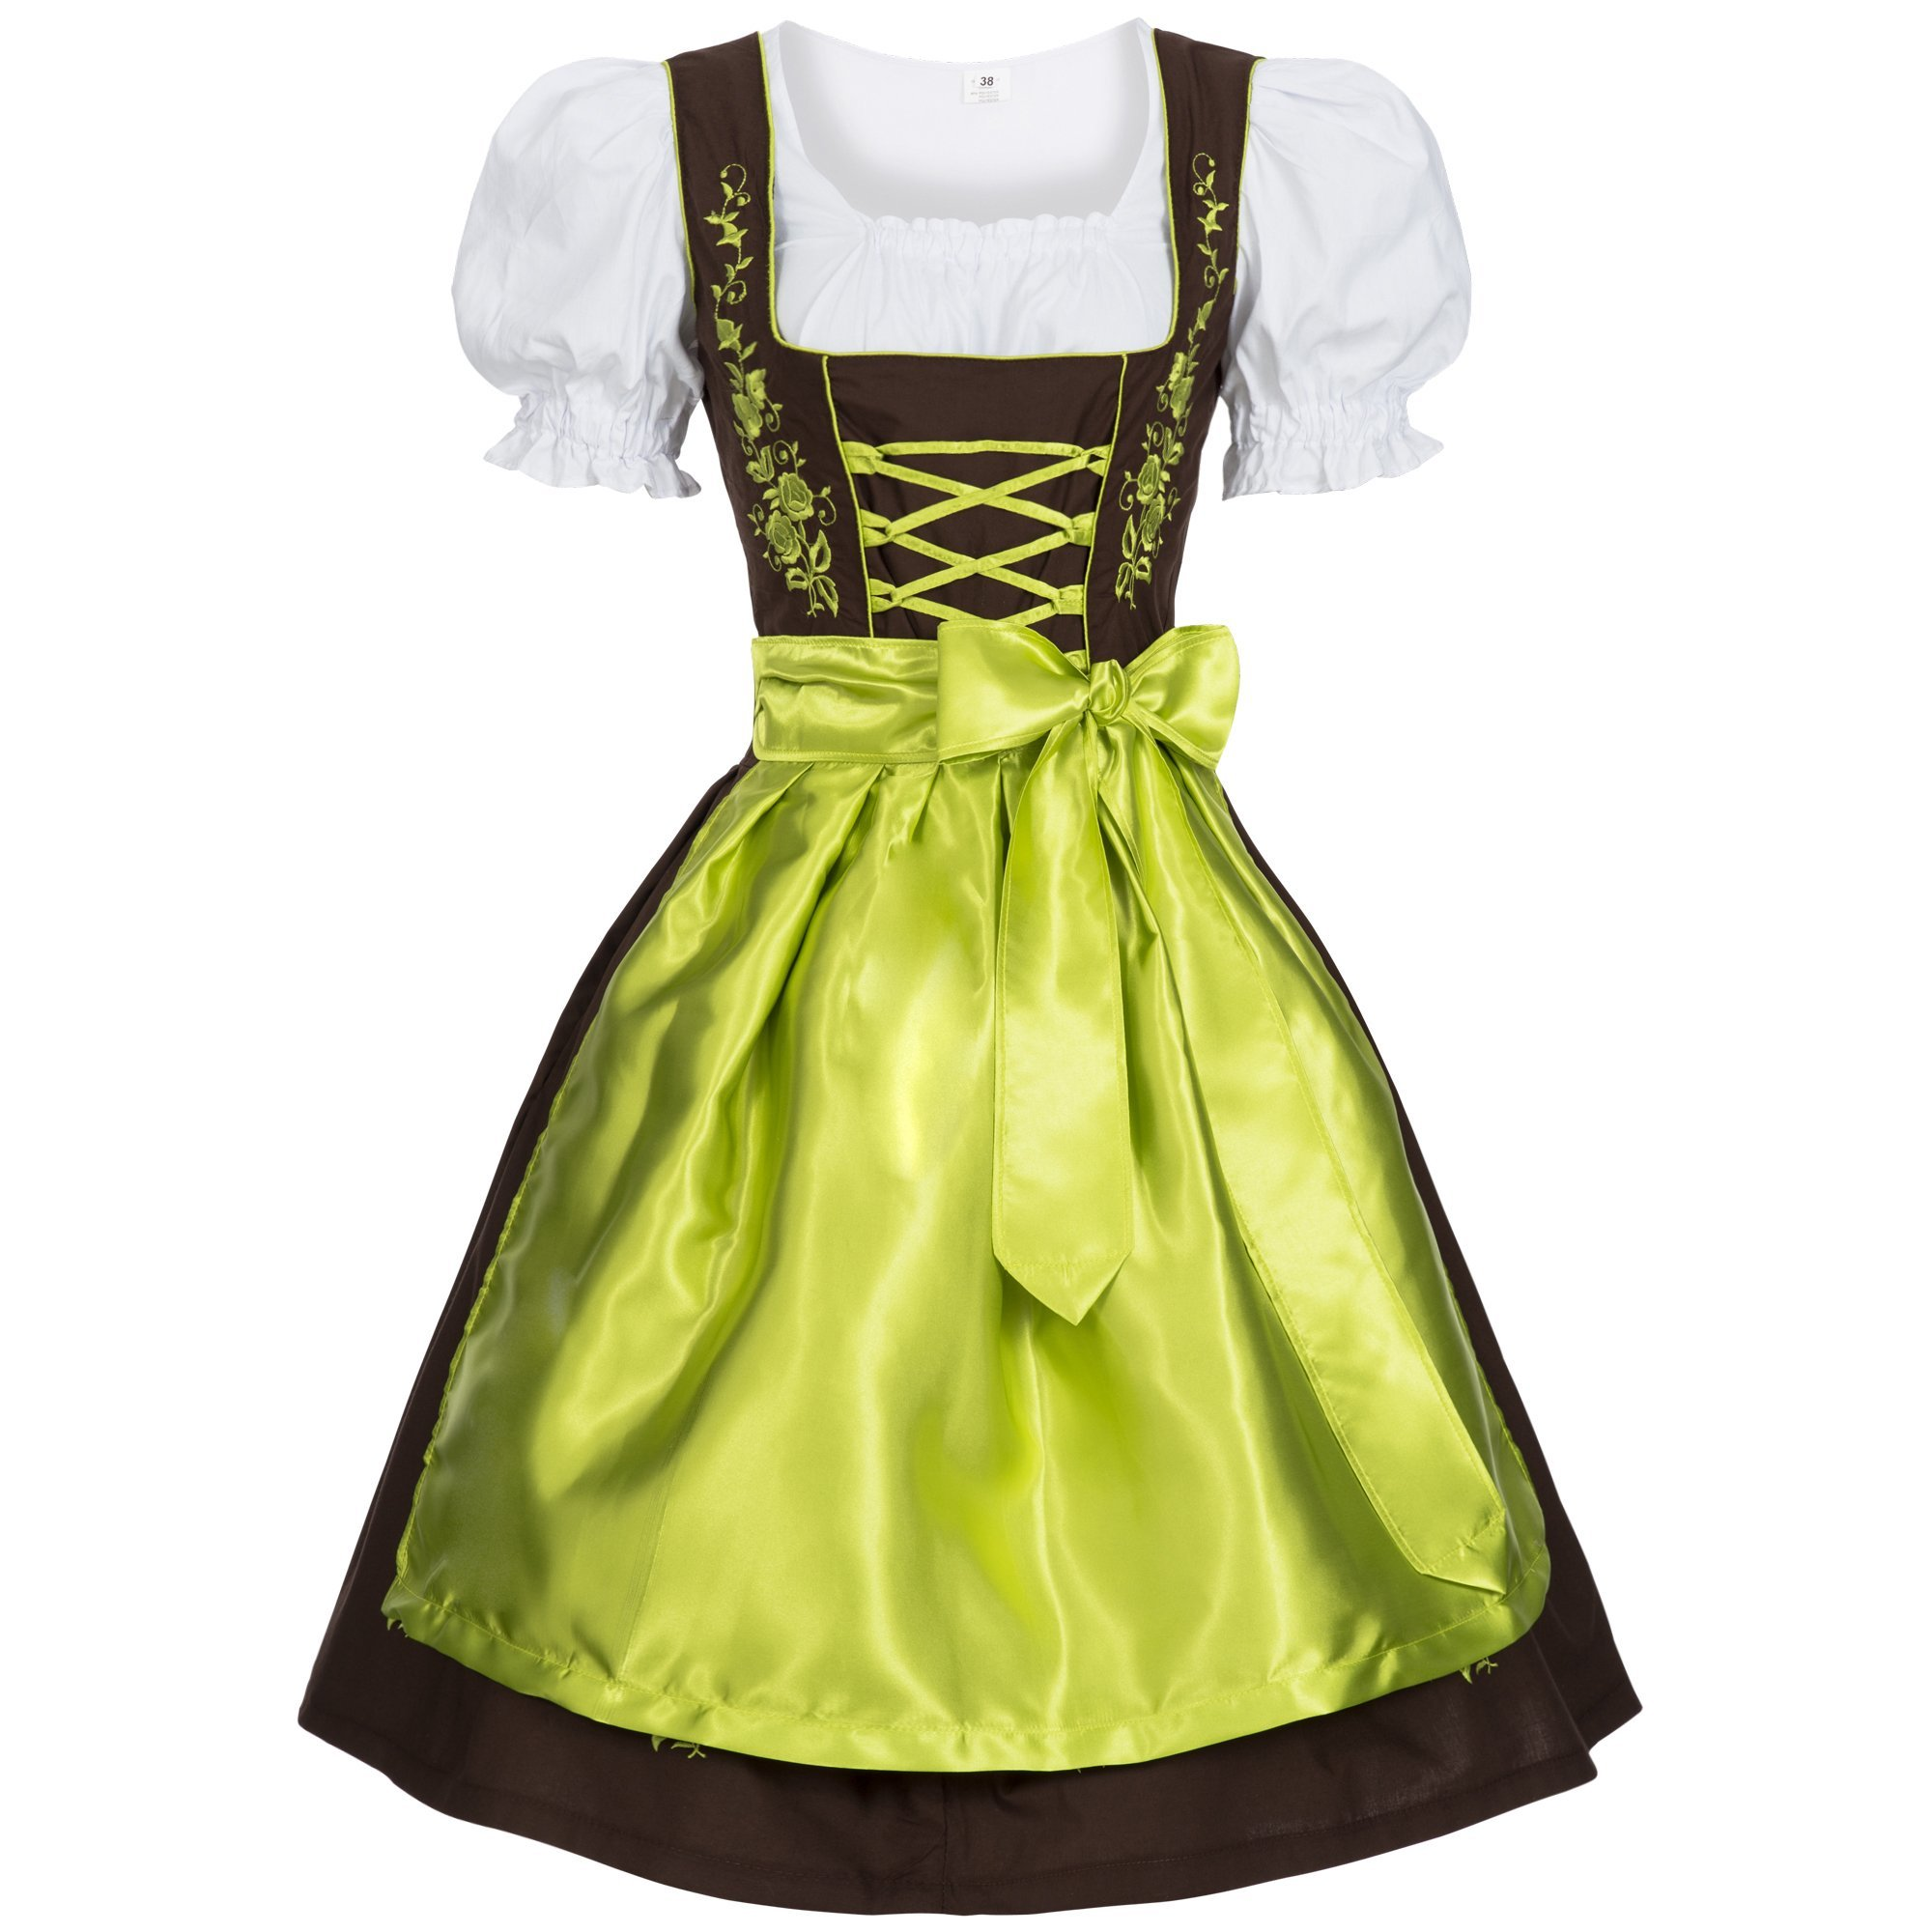 Gaudi-leathers Women's Set-3 Dirndl Pieces Embroidery 38 Brown/Green